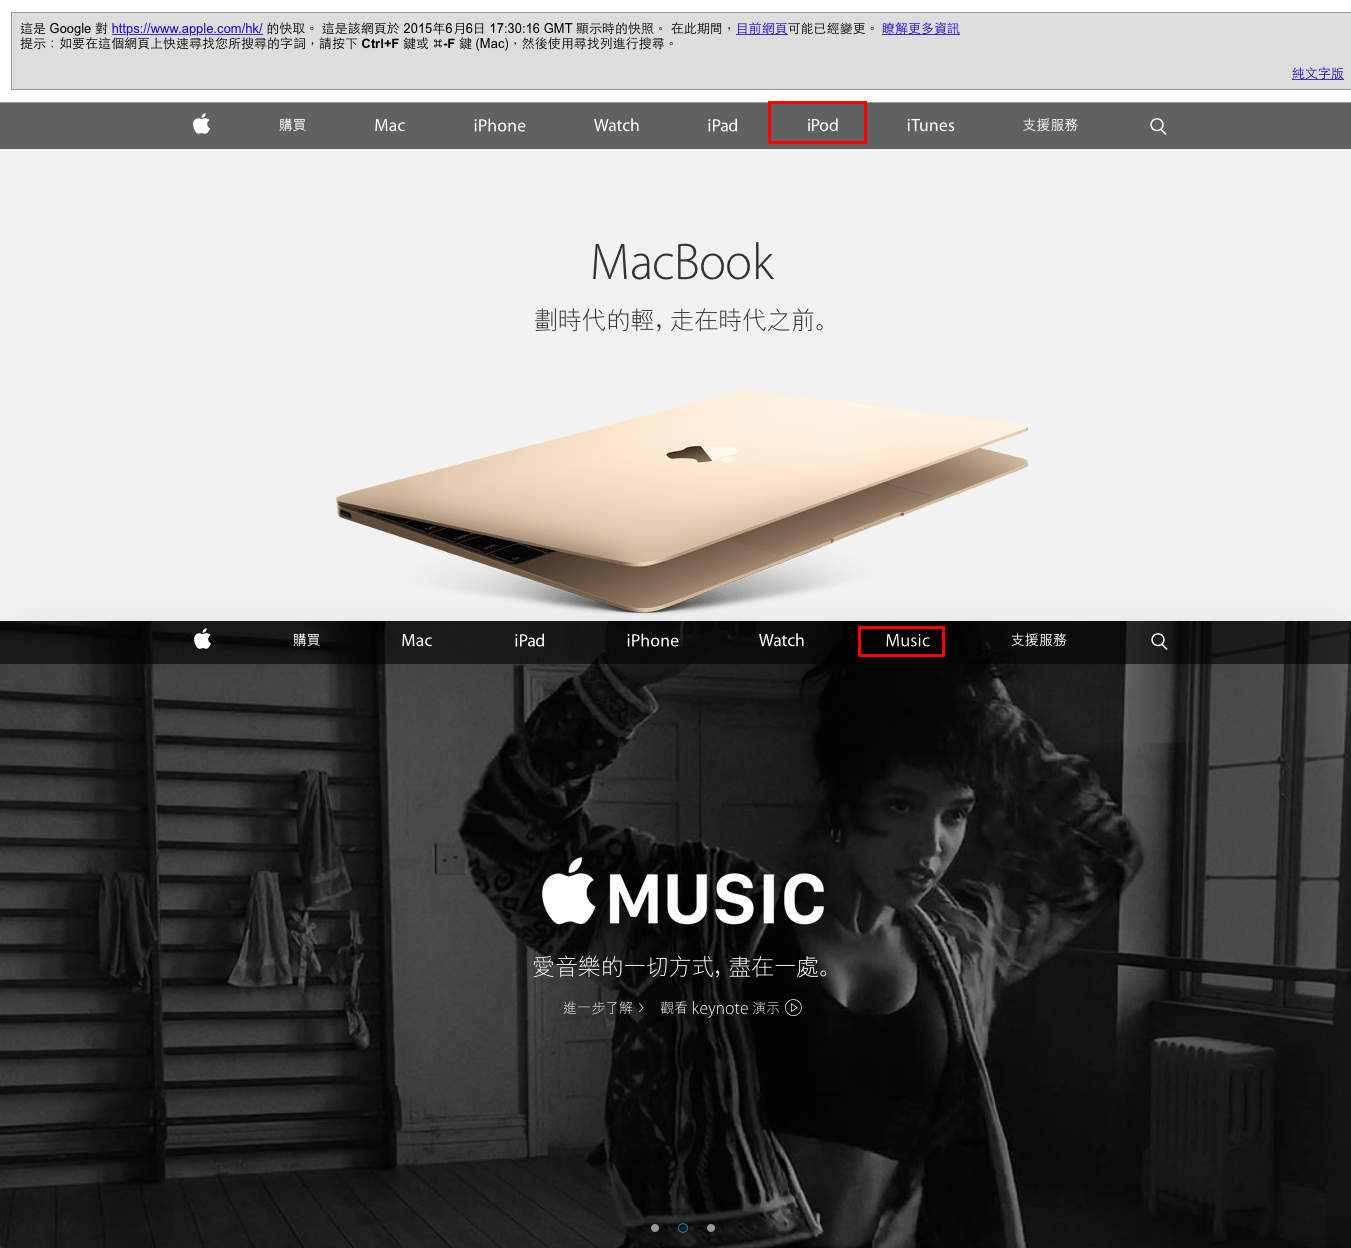 apple-music-let-ipod-disappear-from-apple-website_01